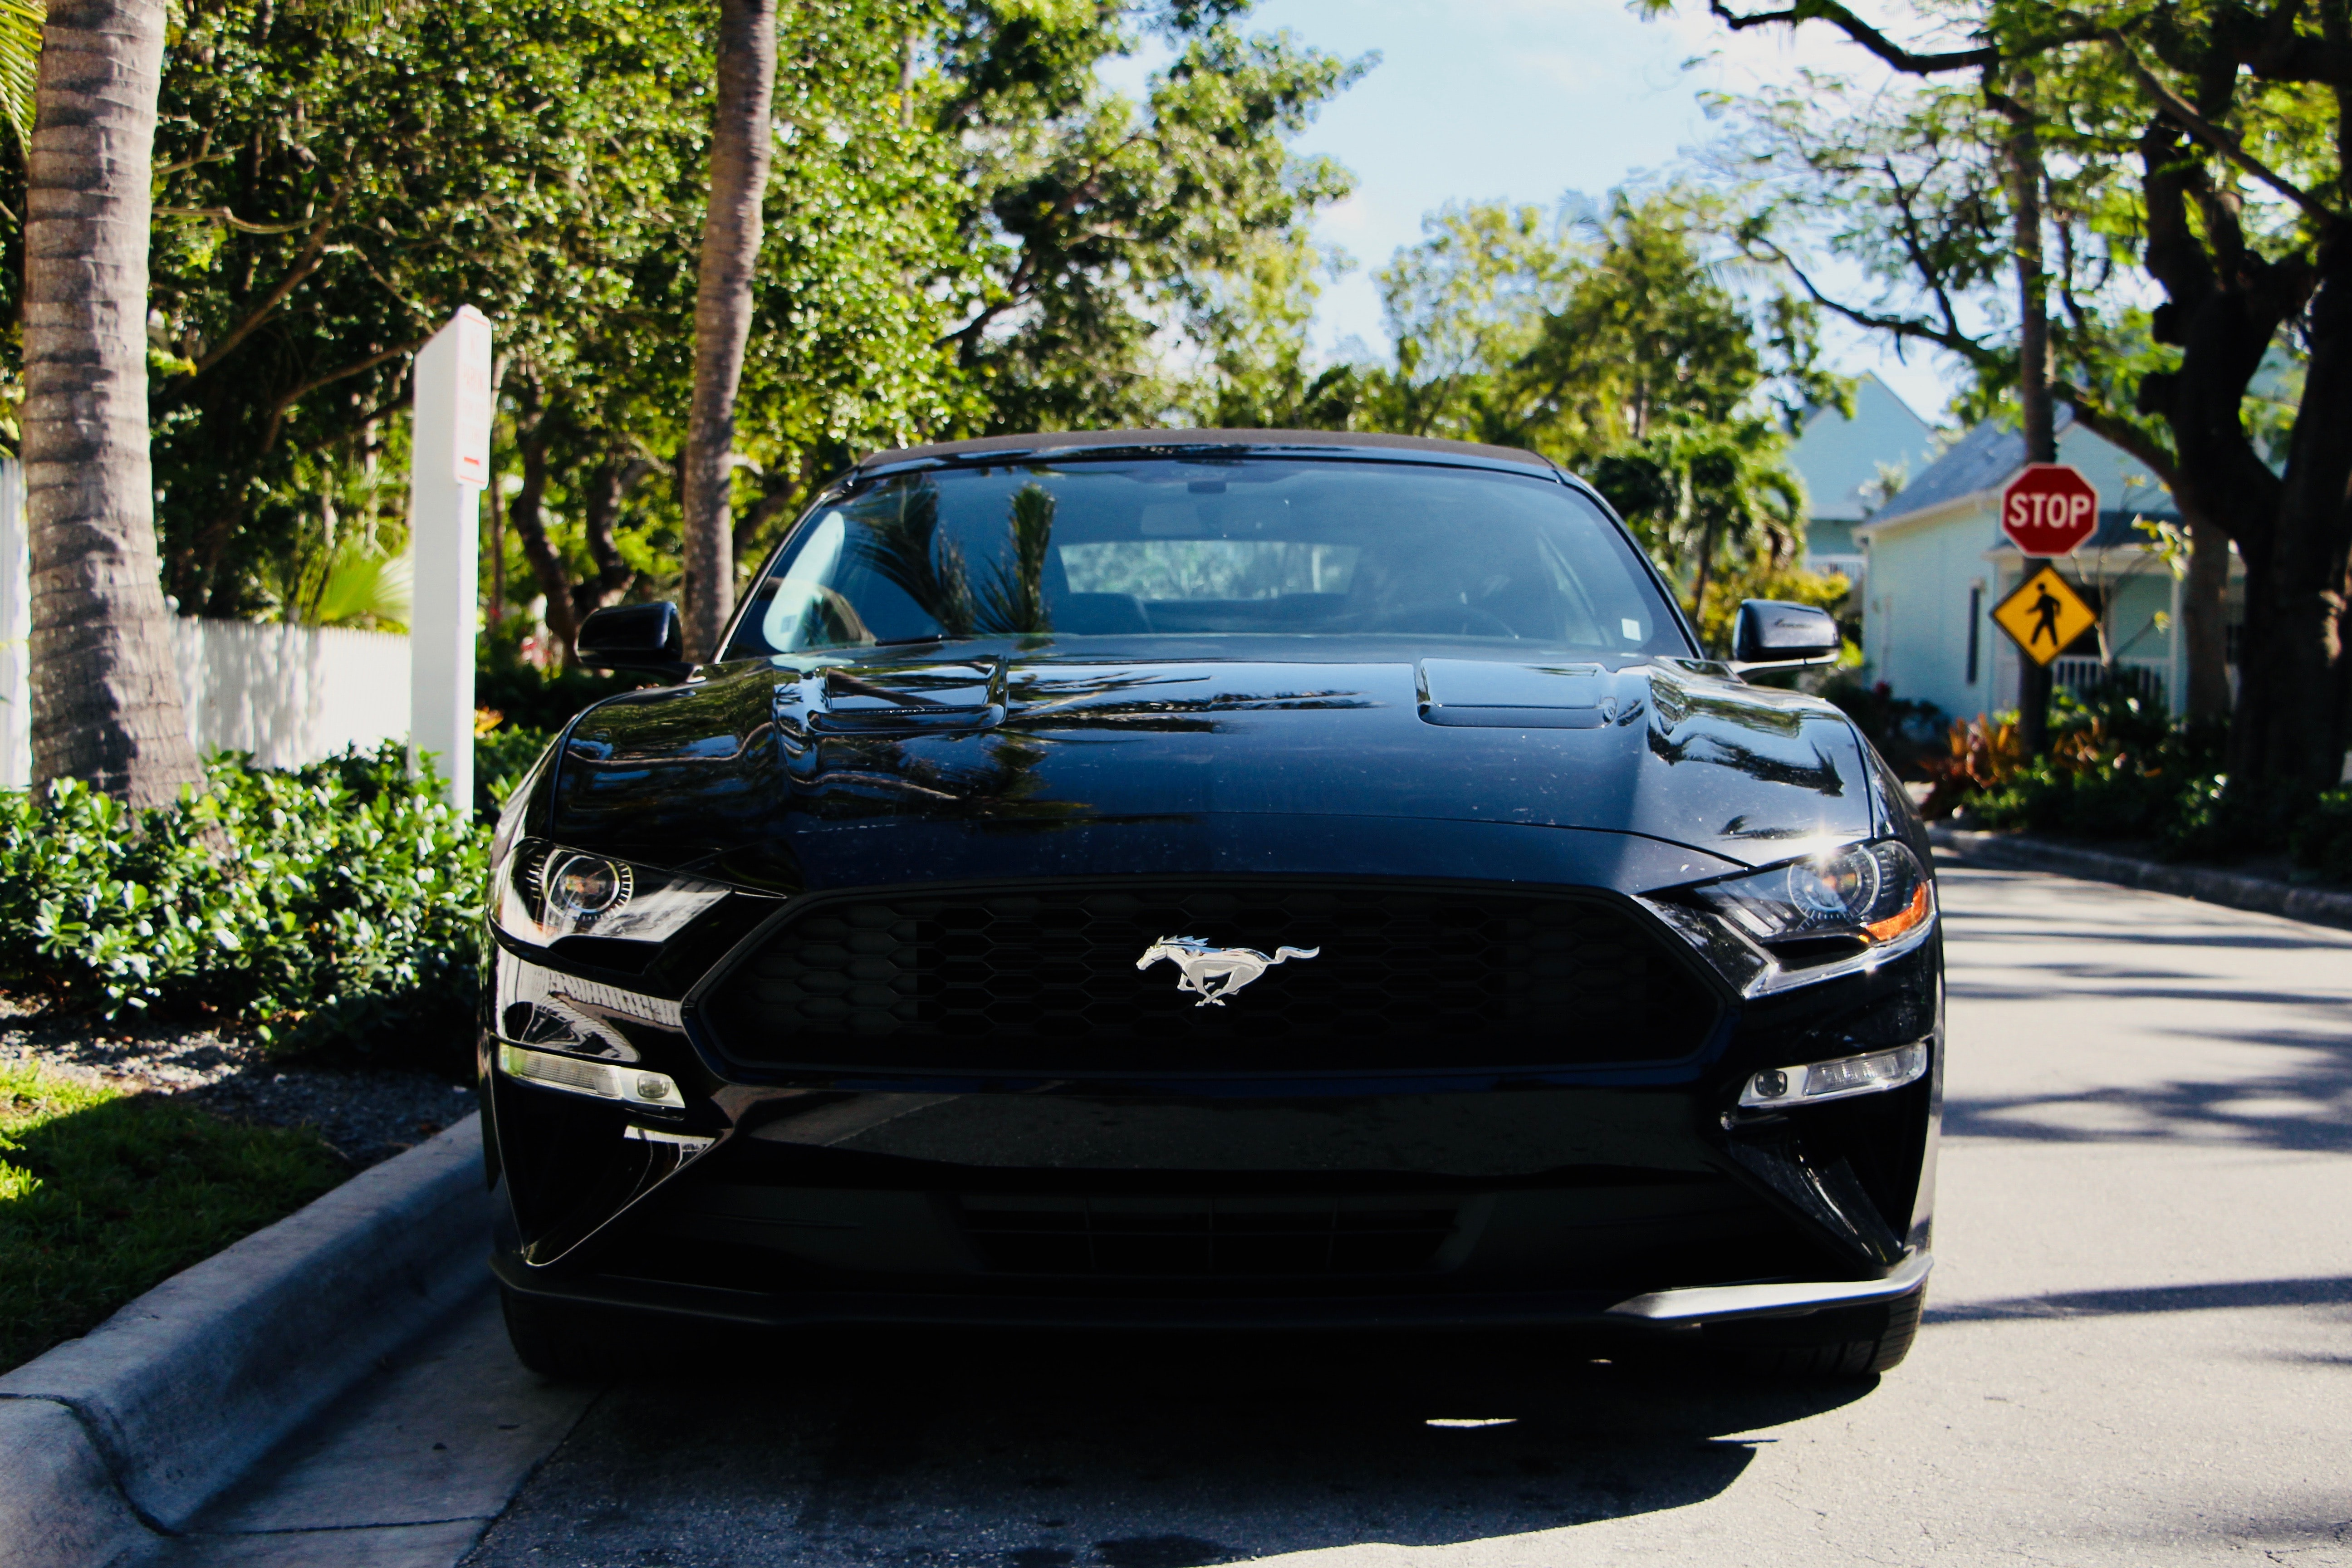 parked black Ford Mustang